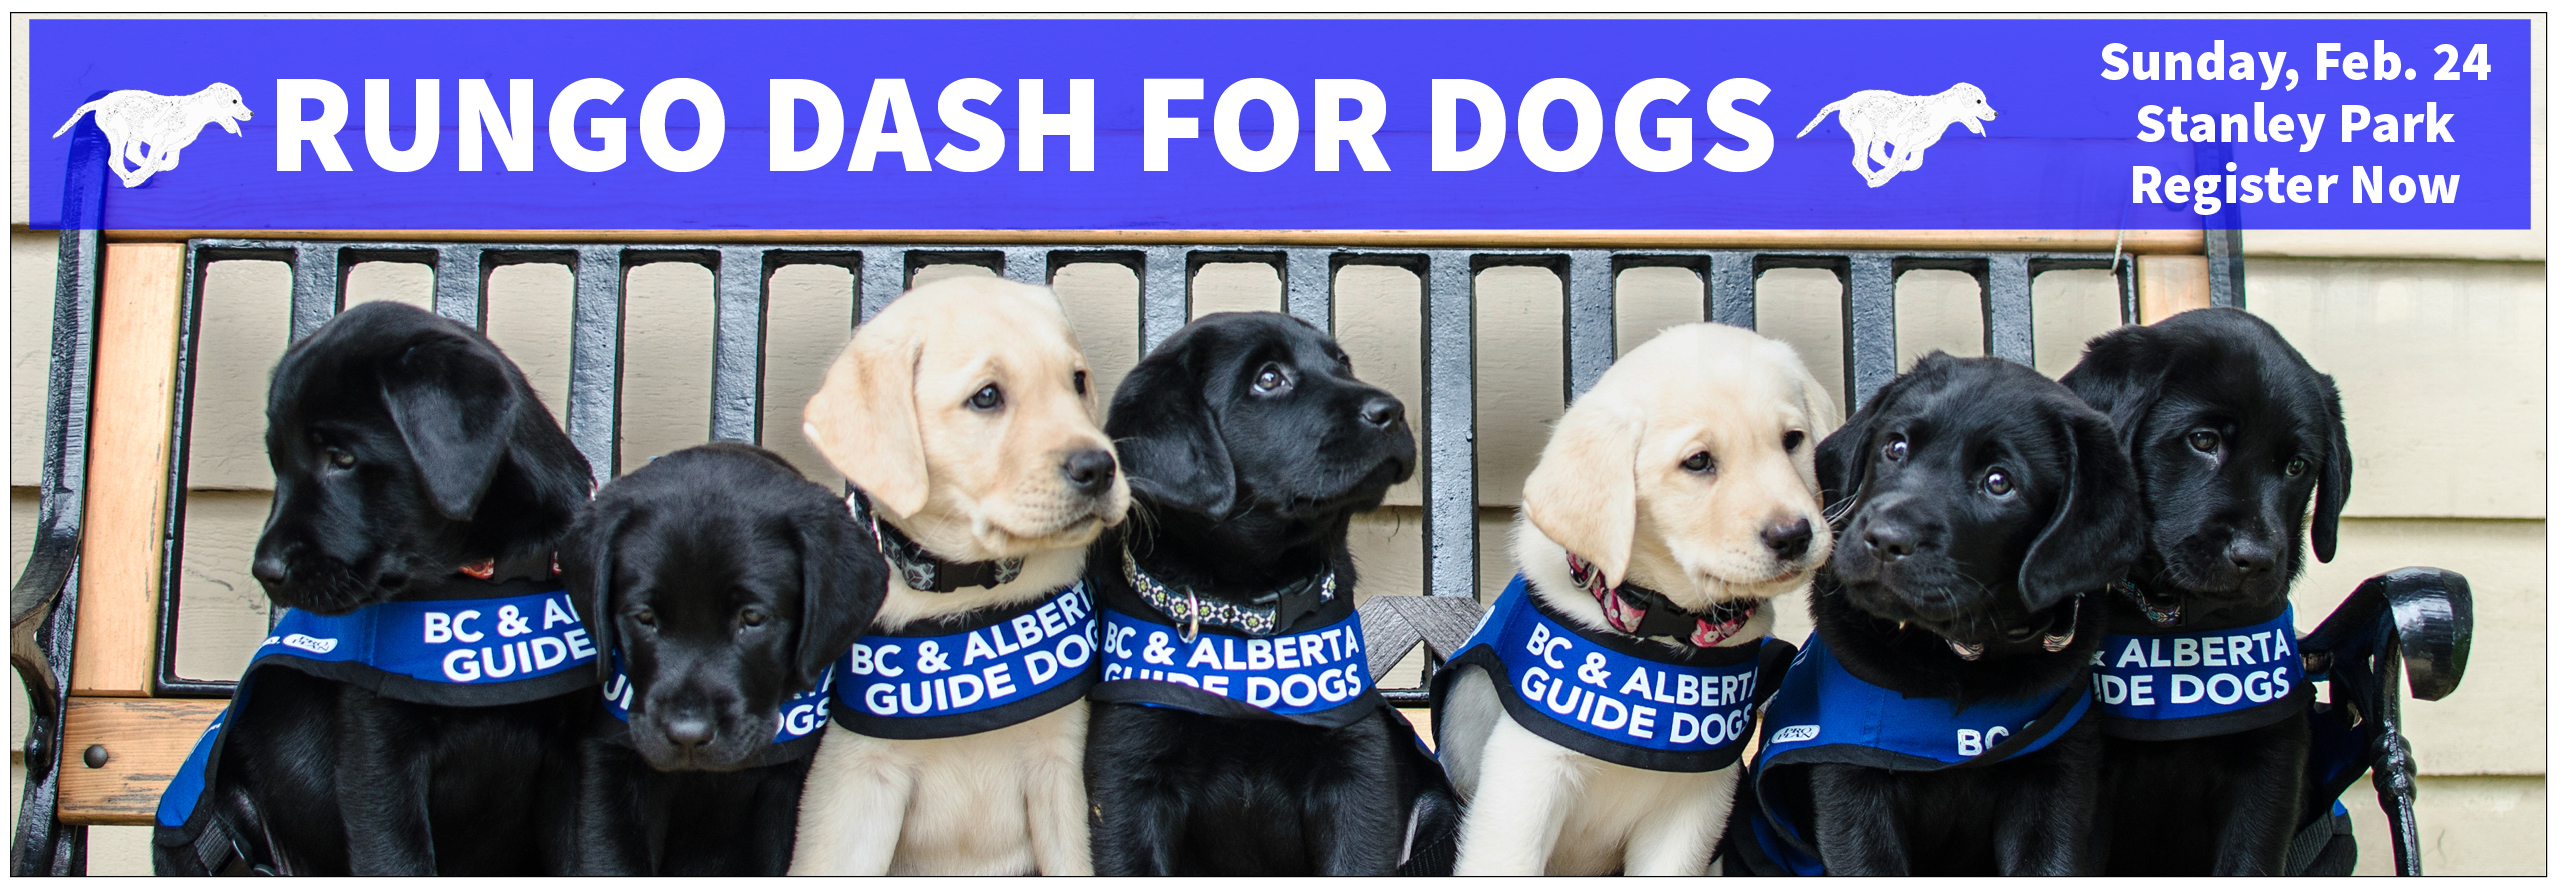 Register now for the 2019 RunGo Dash for Dogs